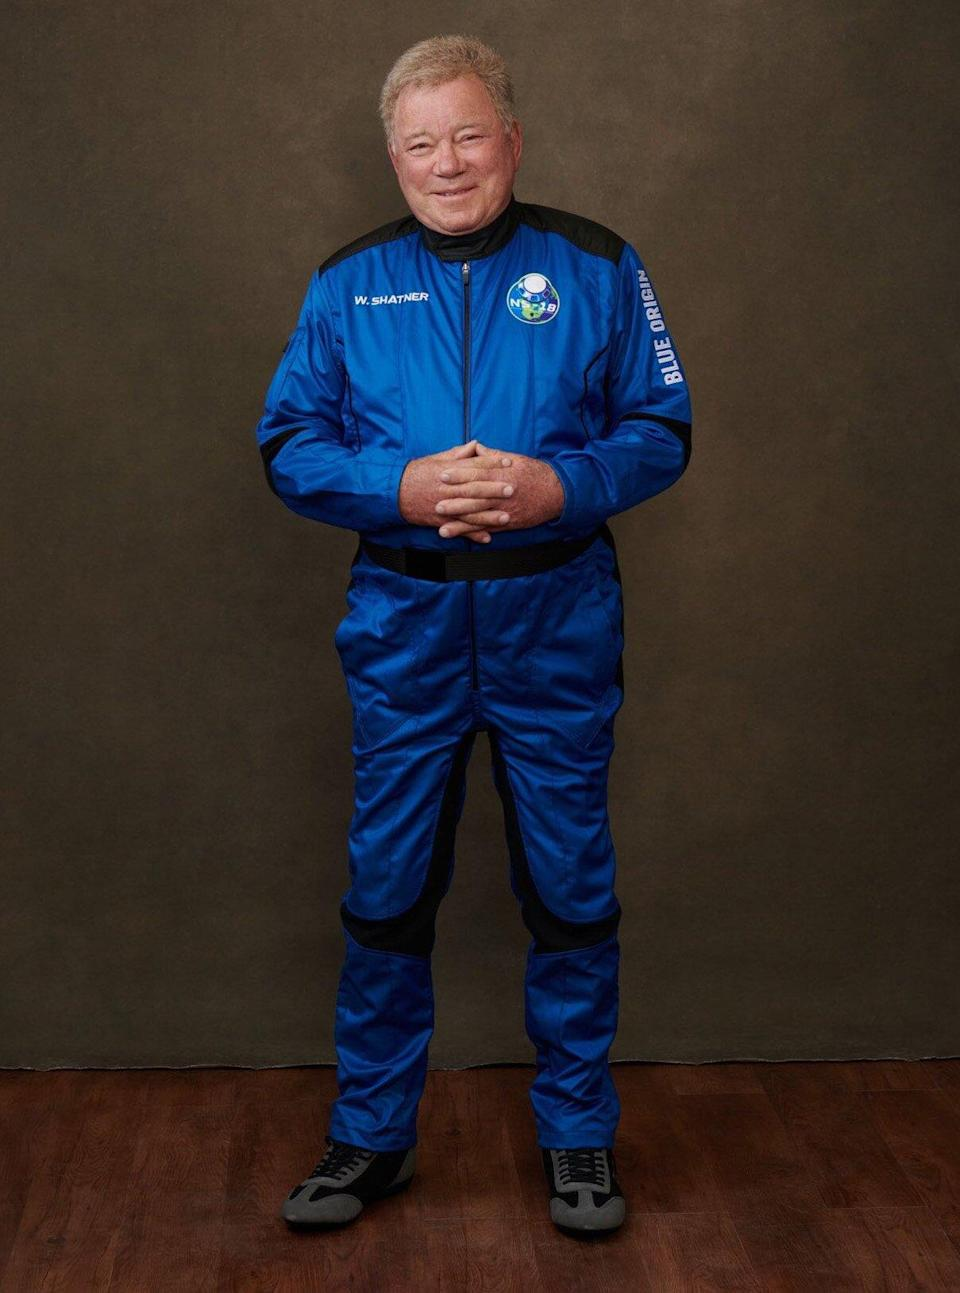 William Shatner's Family Tried Talking Him Out of Space Flight — But He ...